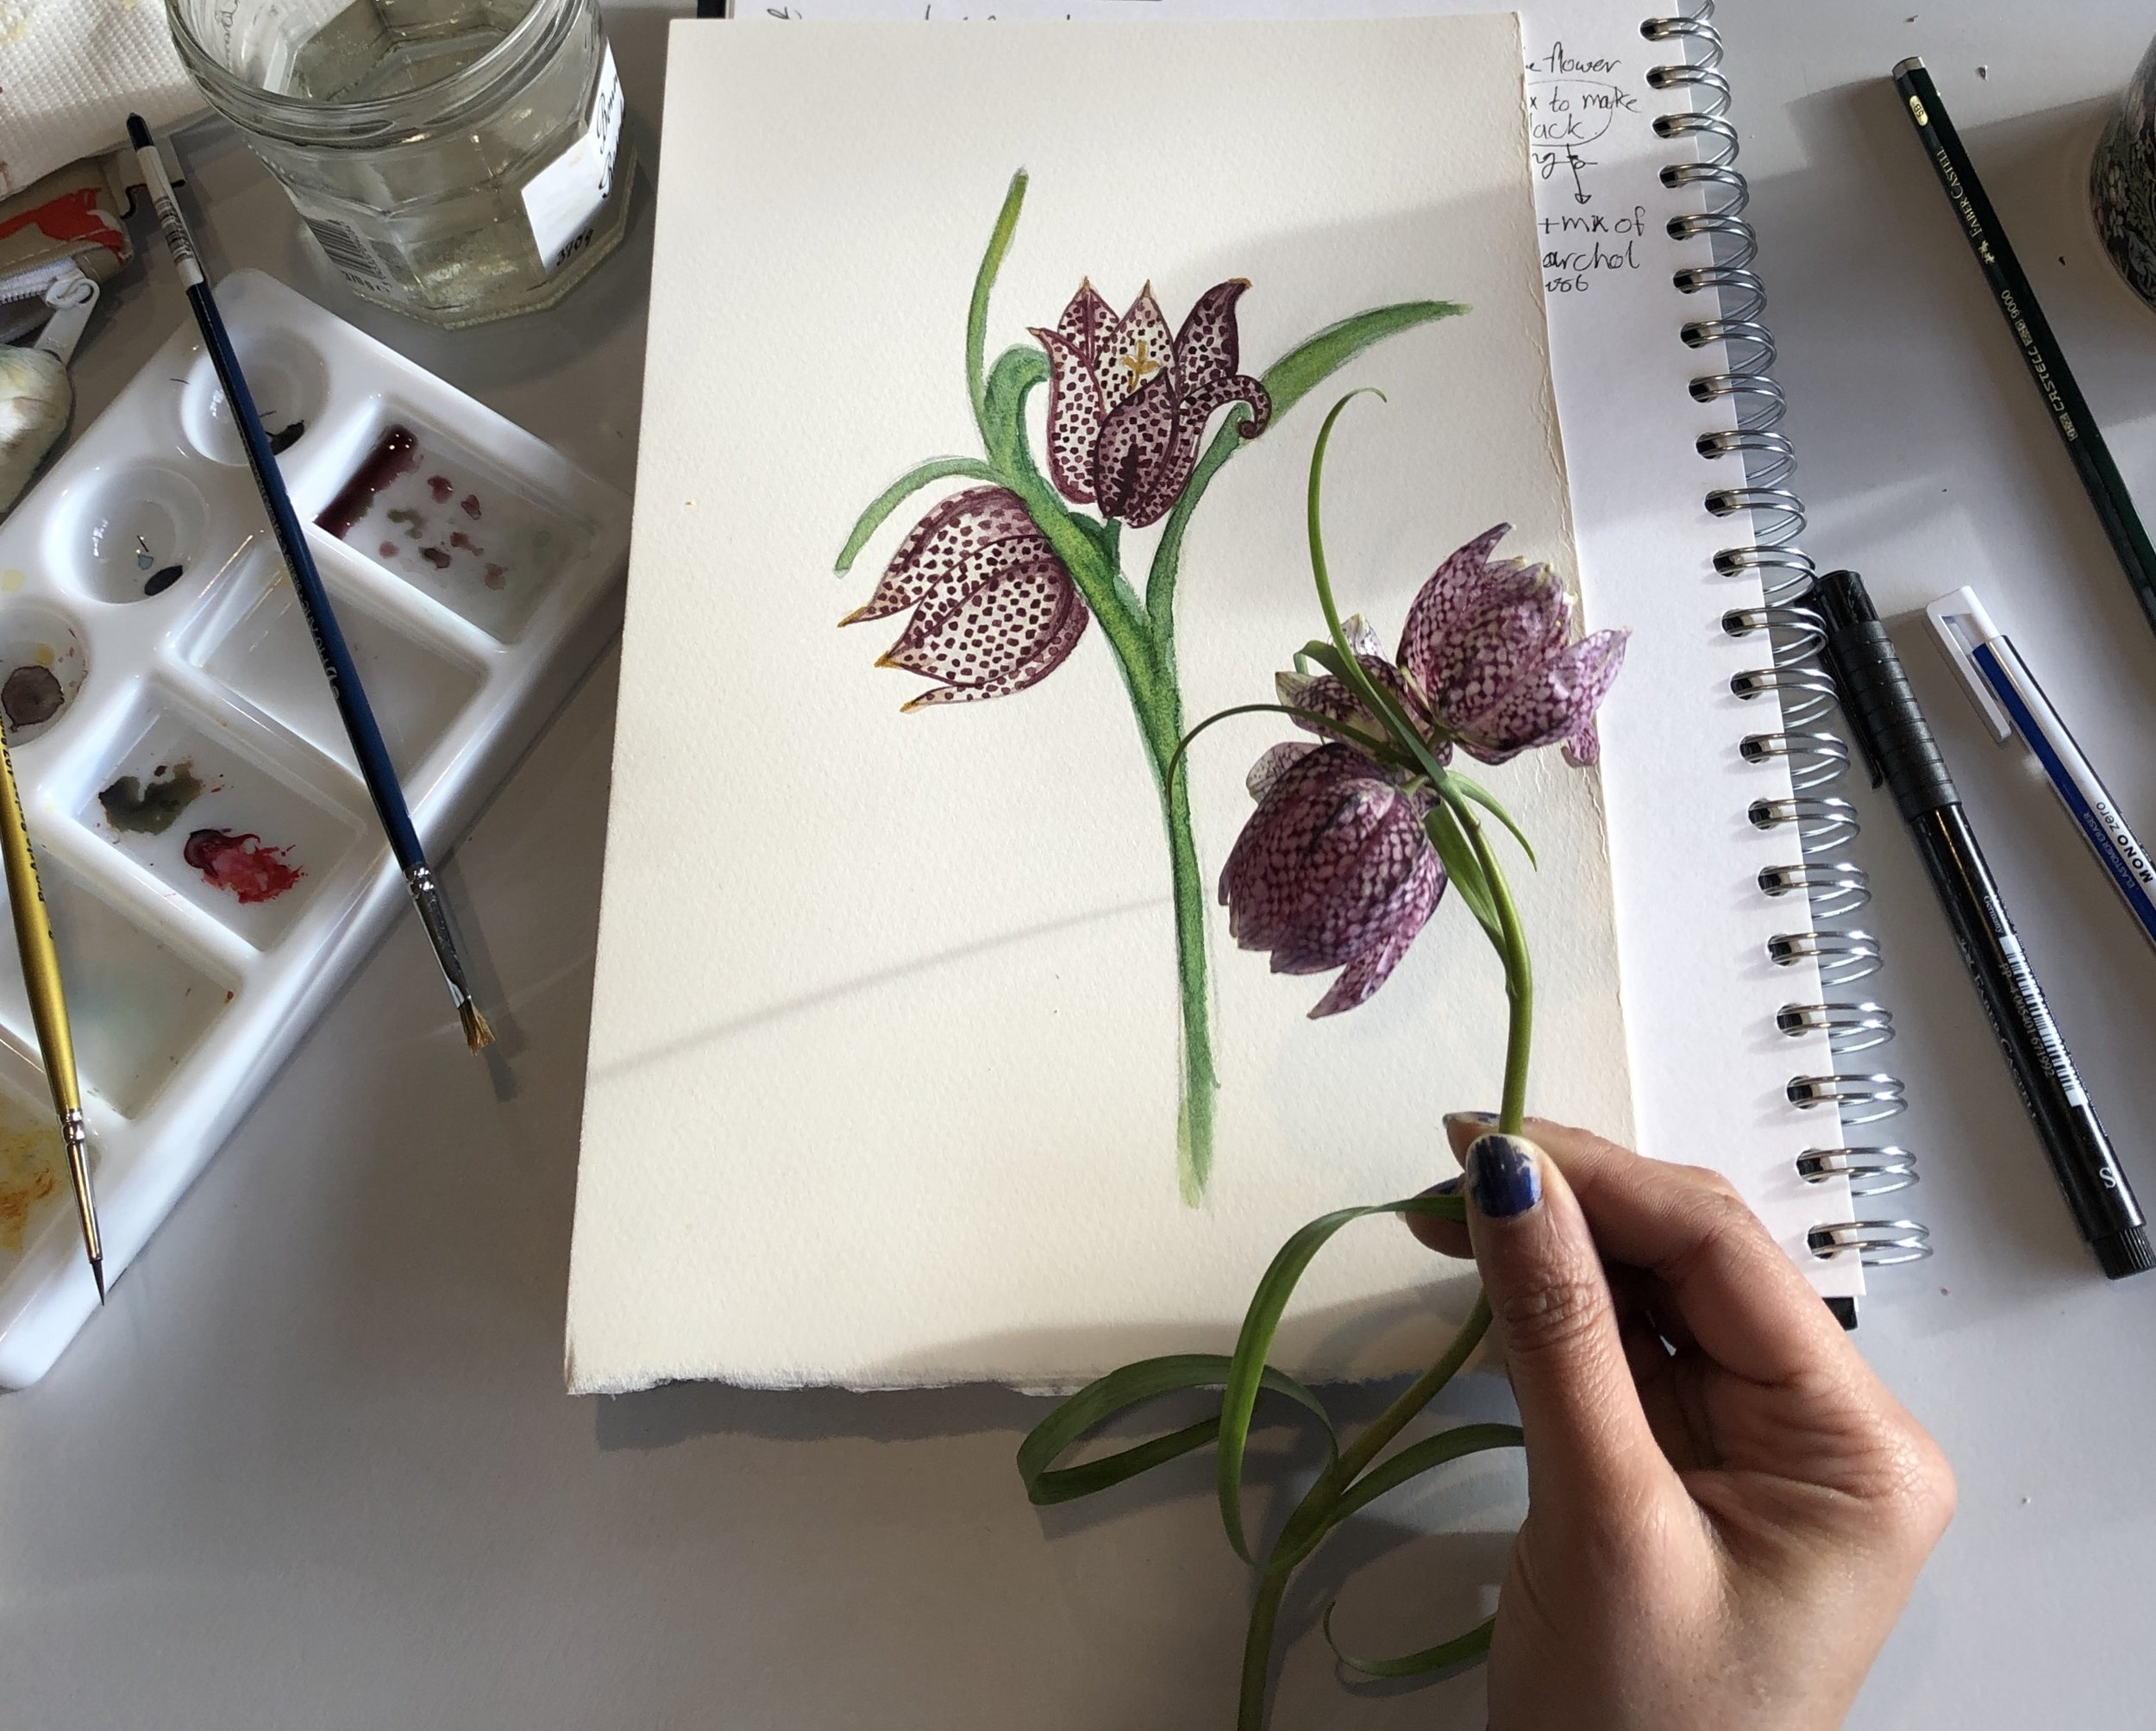 Things I learnt from the Botanical Illustration and Taxonomy